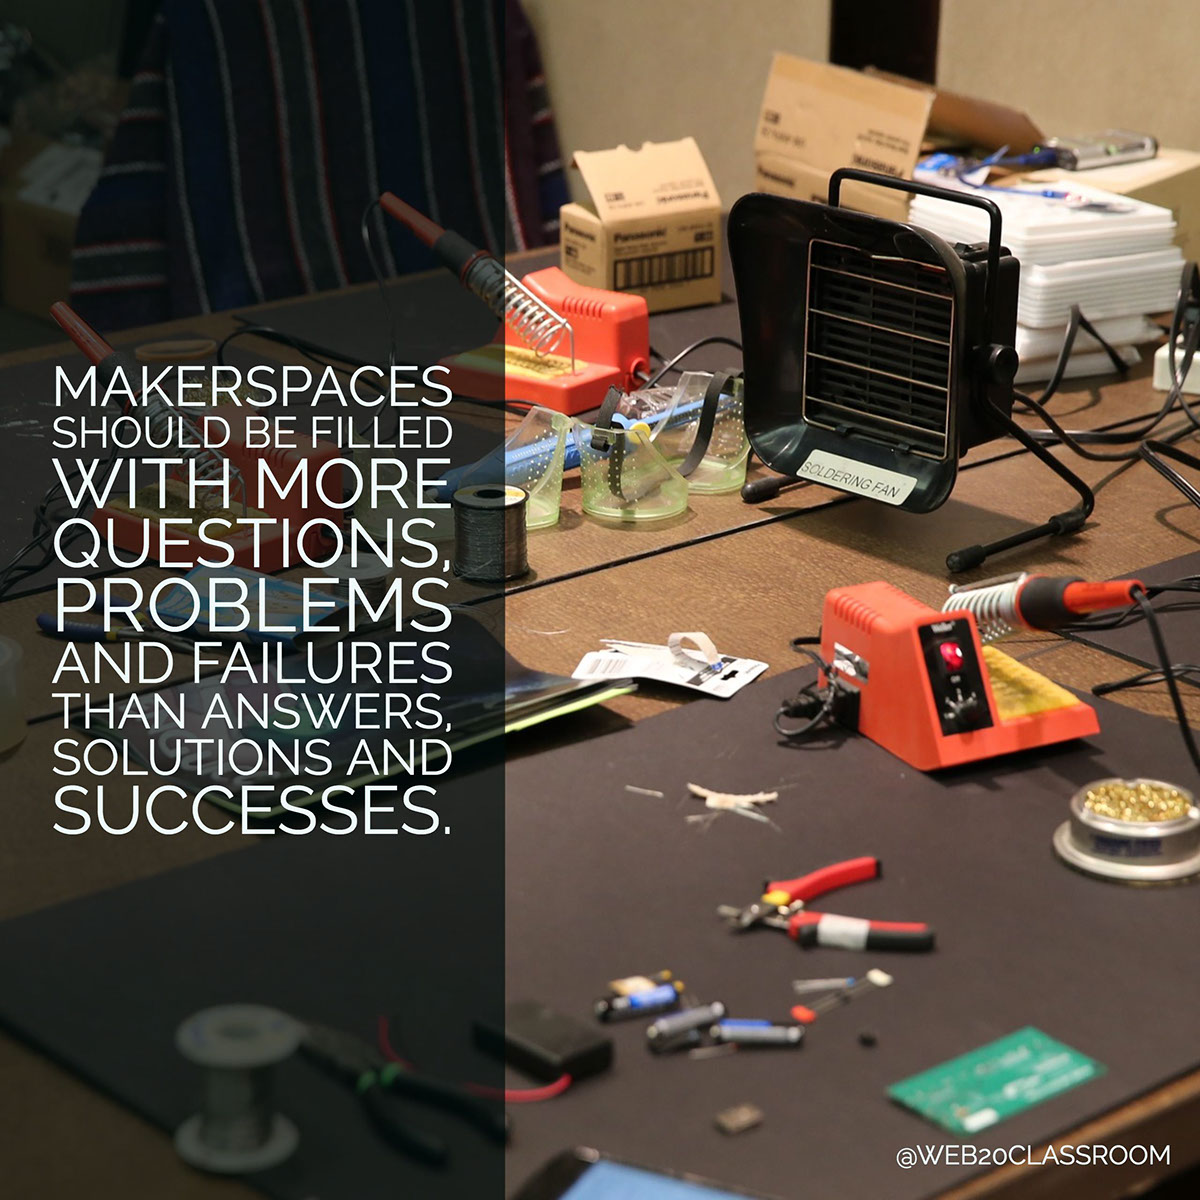 Makerspaces should be filled with more questions, problems and failures than answers, solutions and successes.